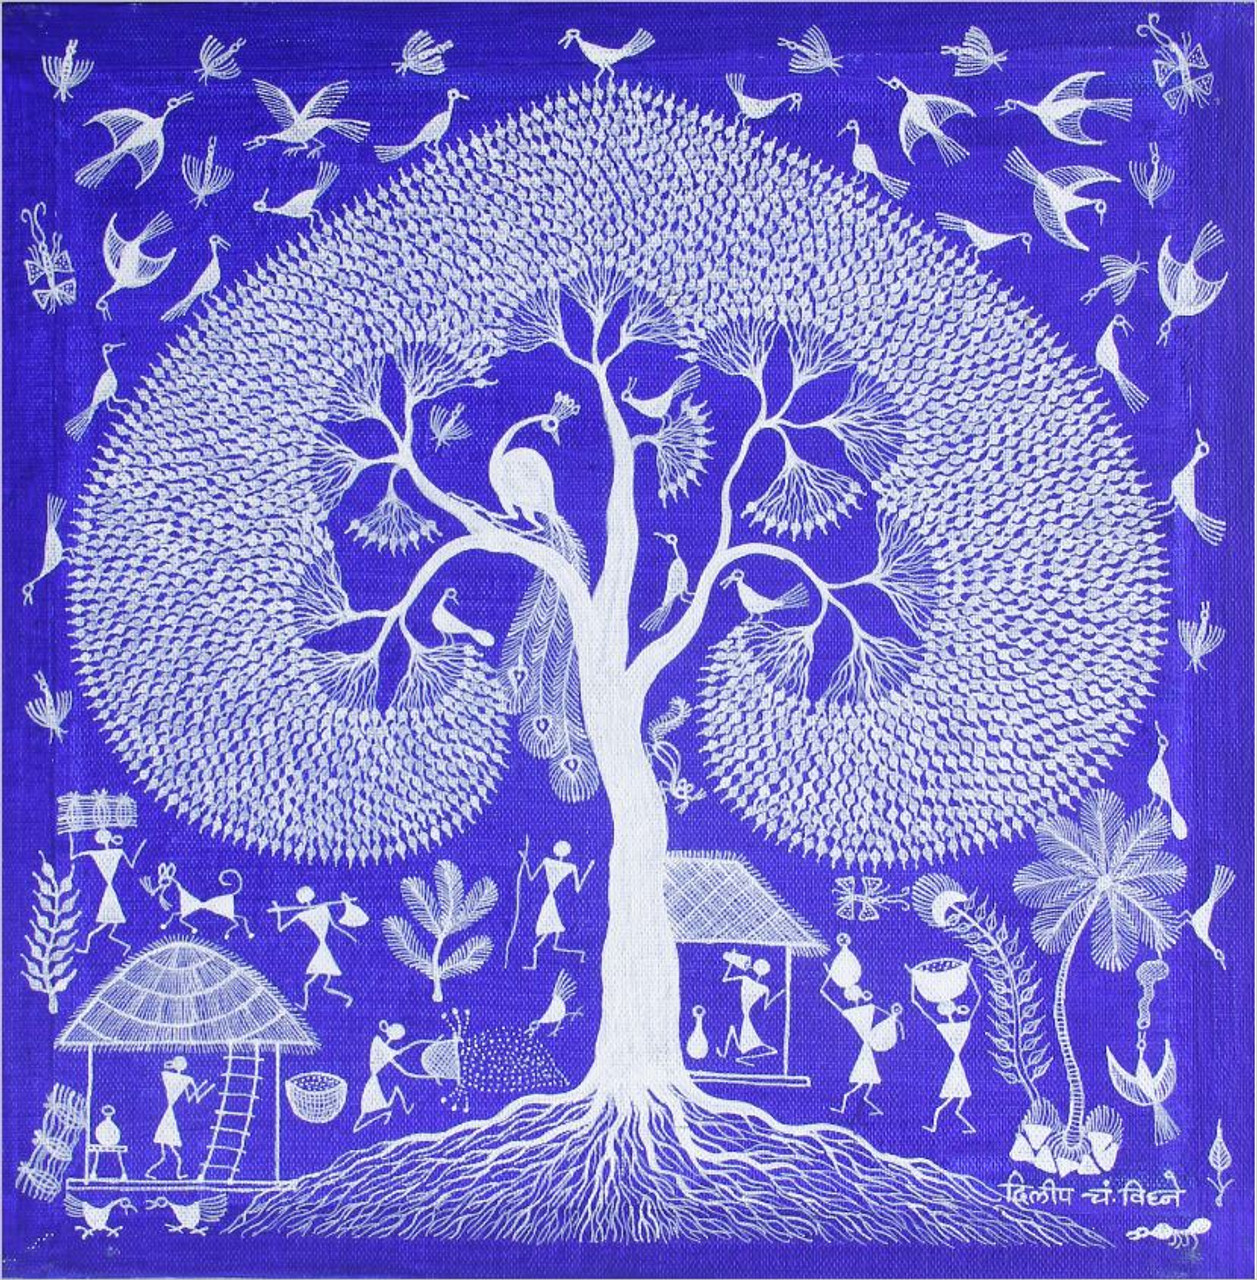 Buy Tribal Warli Painting Indian Traditional Painting Tribal Lifestyle Handmade Painting By Anavita Artistry Studios Private Limited Code Art 7213 45170 Paintings For Sale Online In India